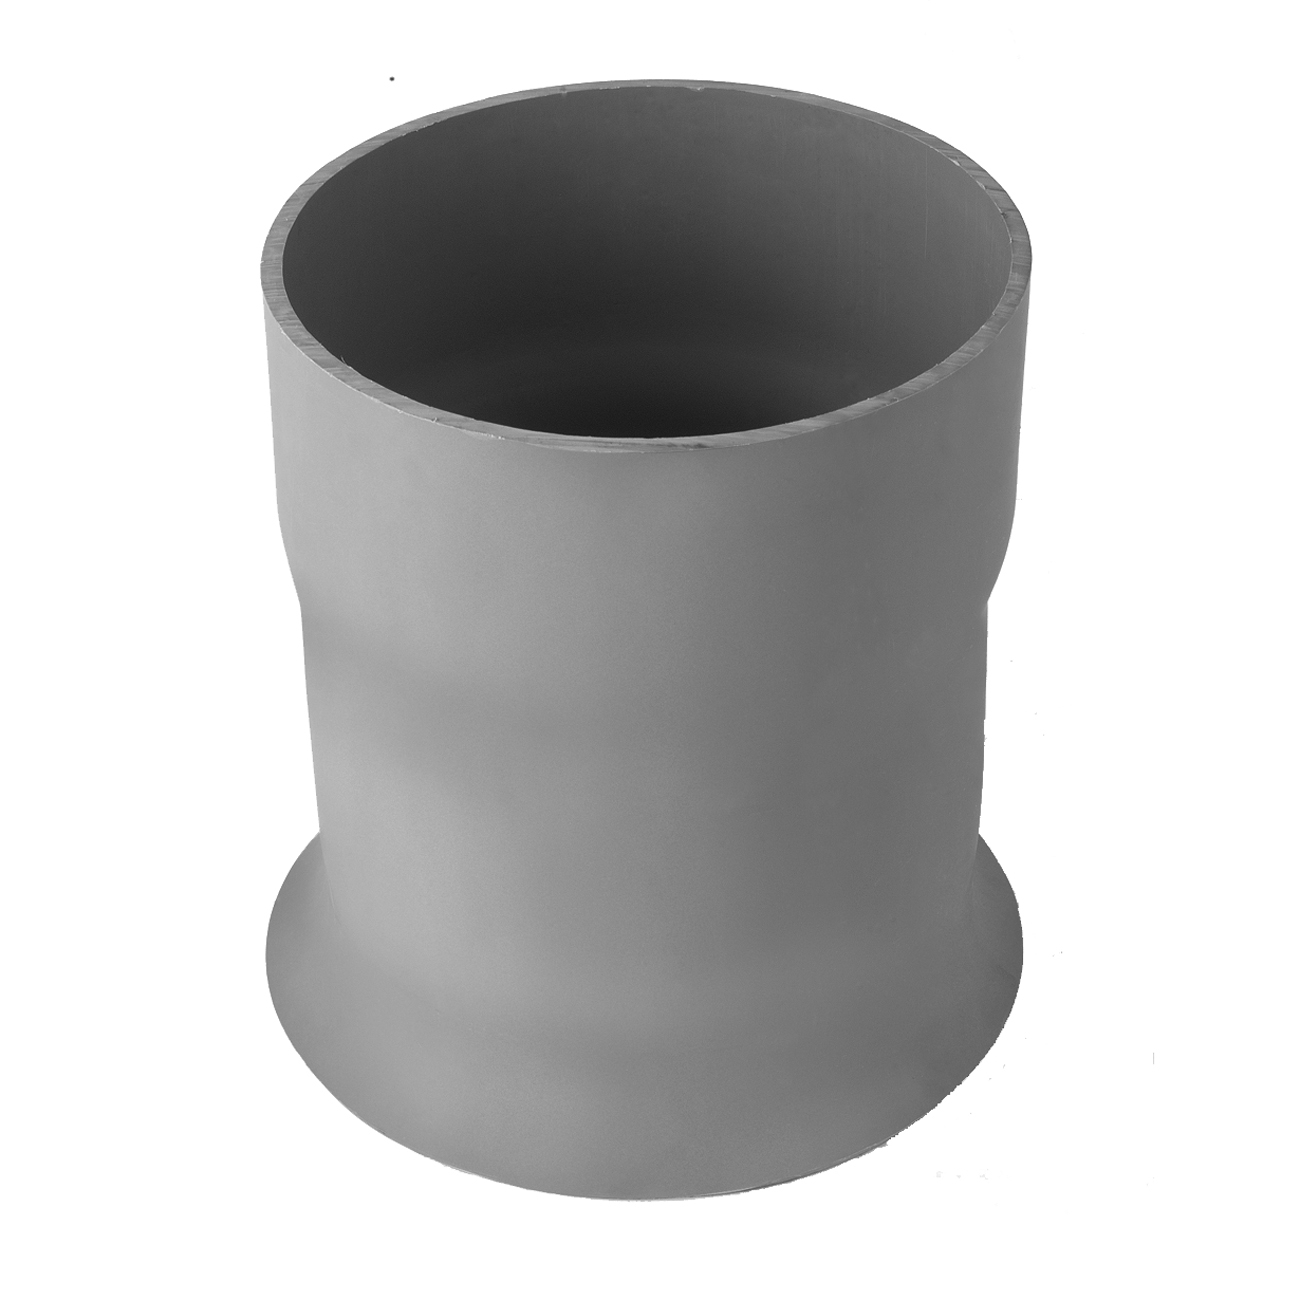 6 INCH X 6 INCH P&C LONG END BELL